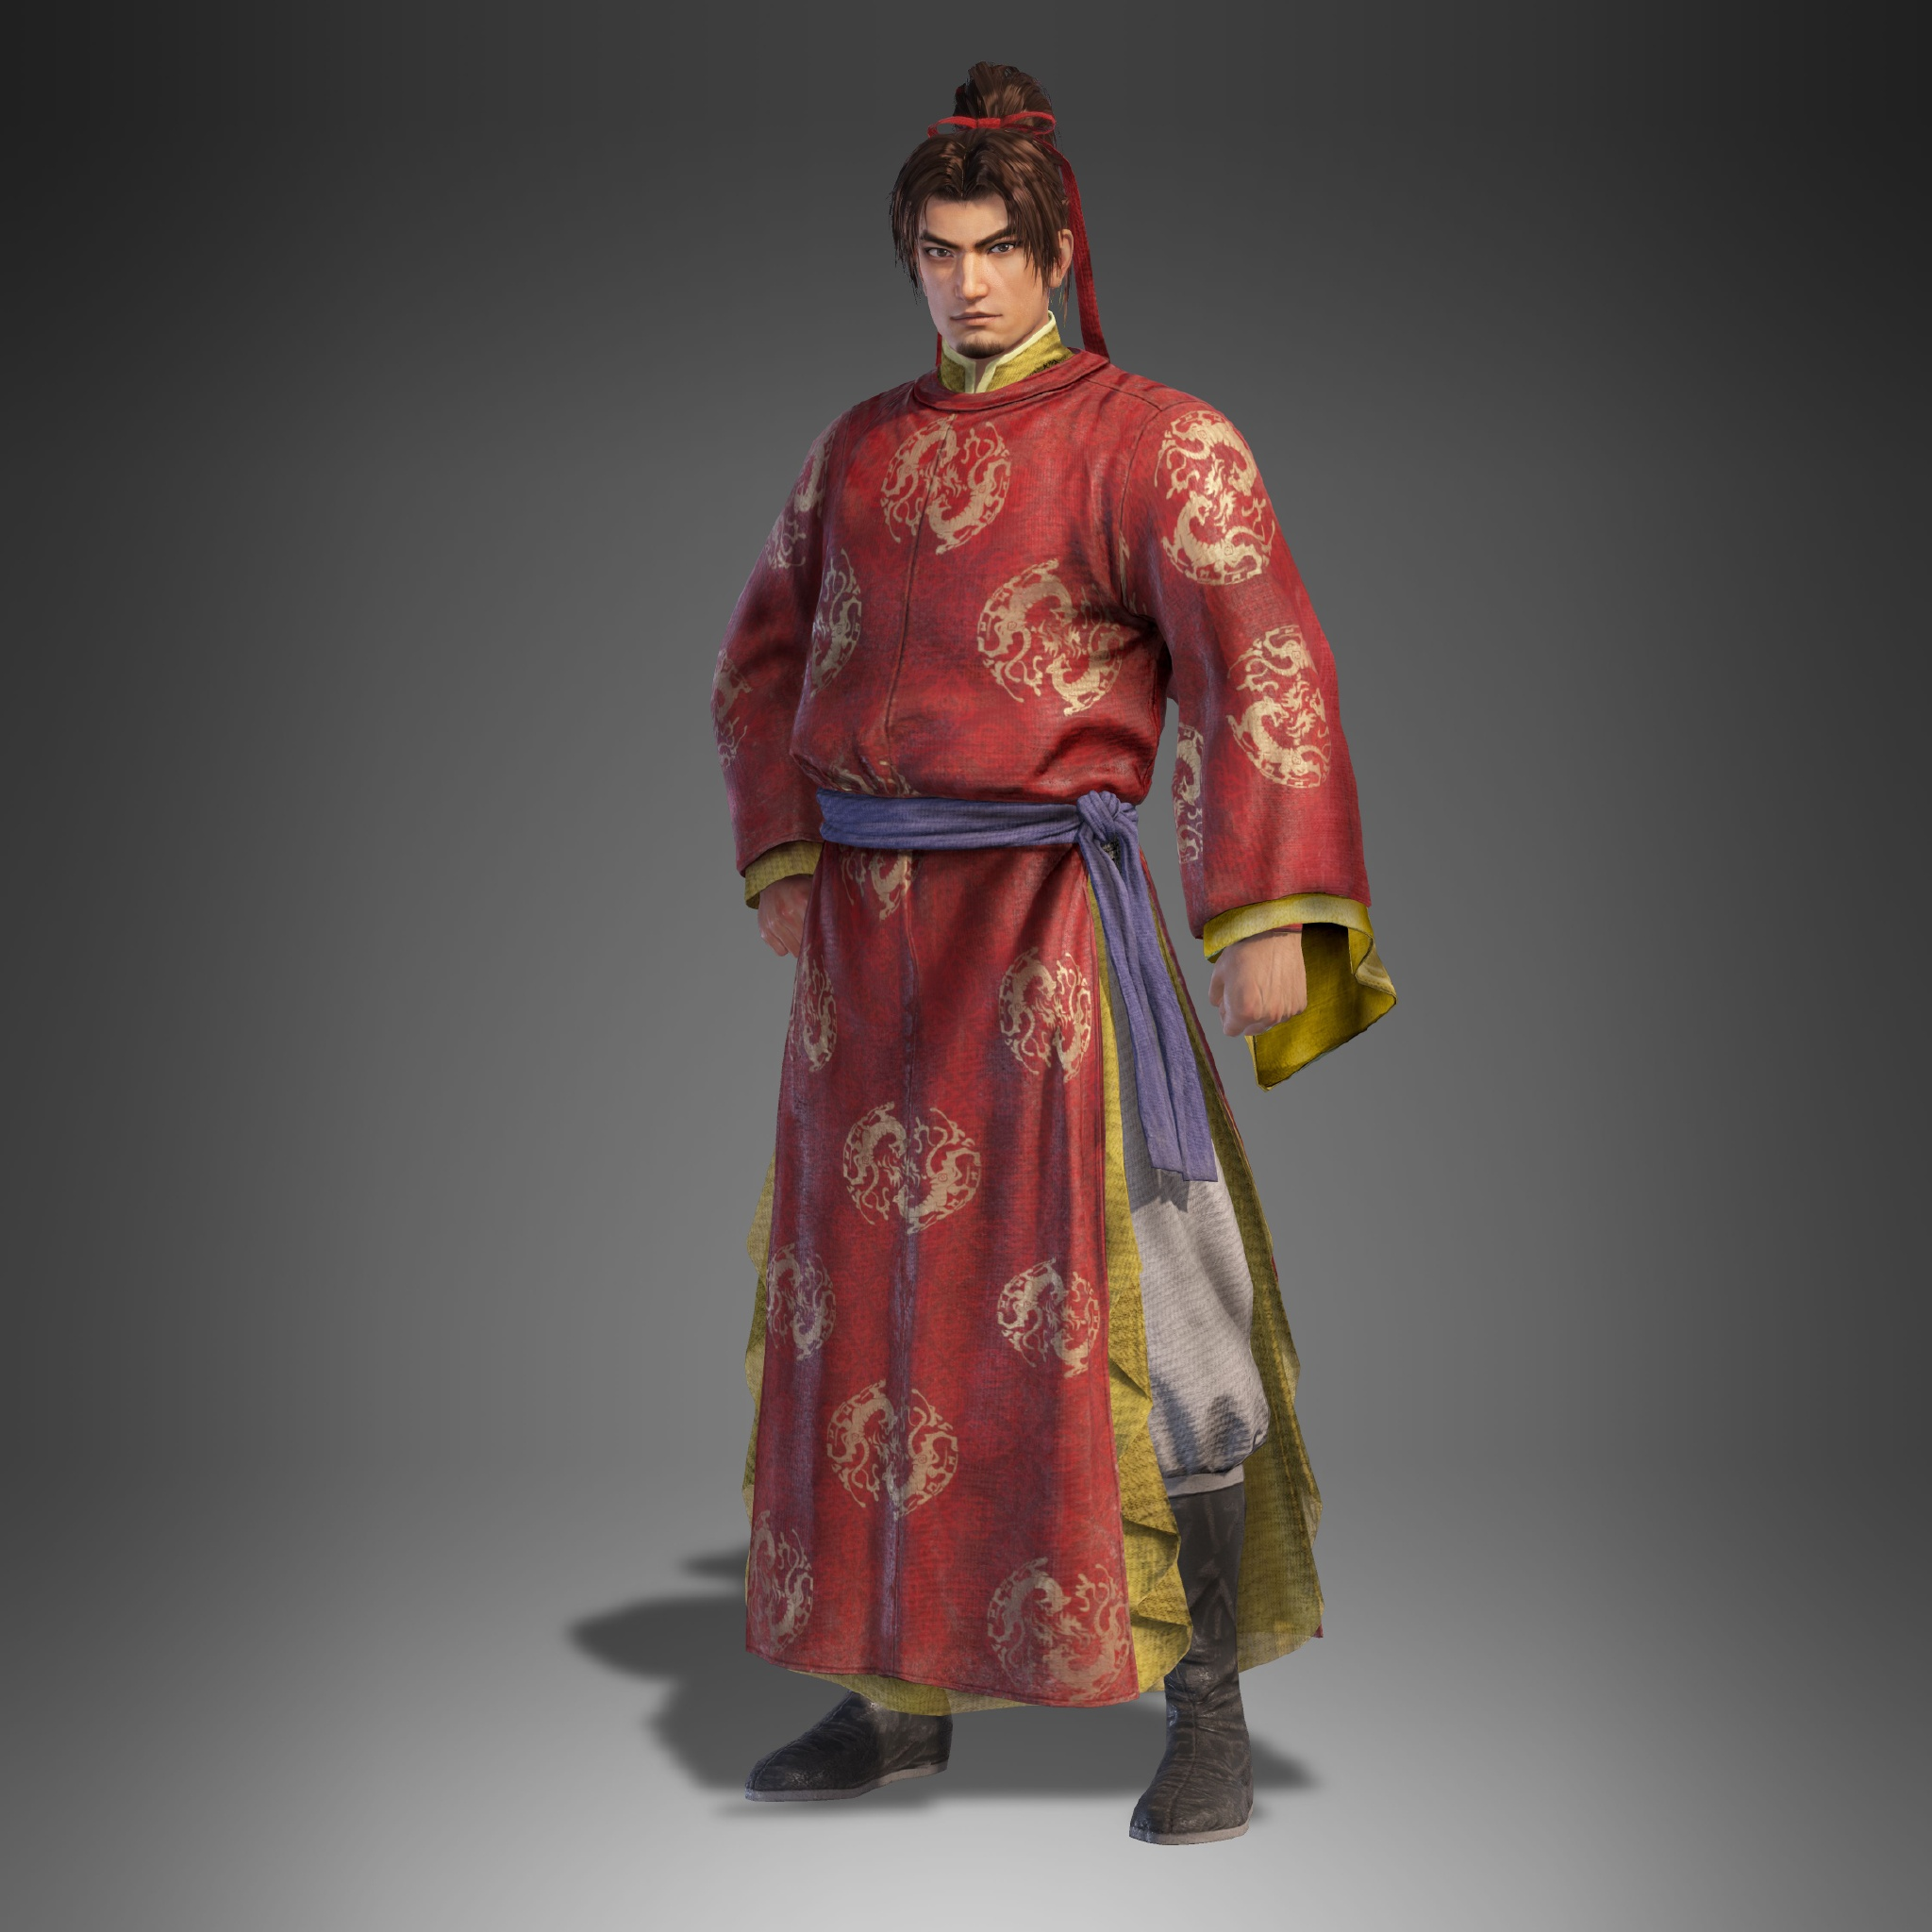 Dynasty Warriors 9 Off-battle Outfits Updated, Yuanji